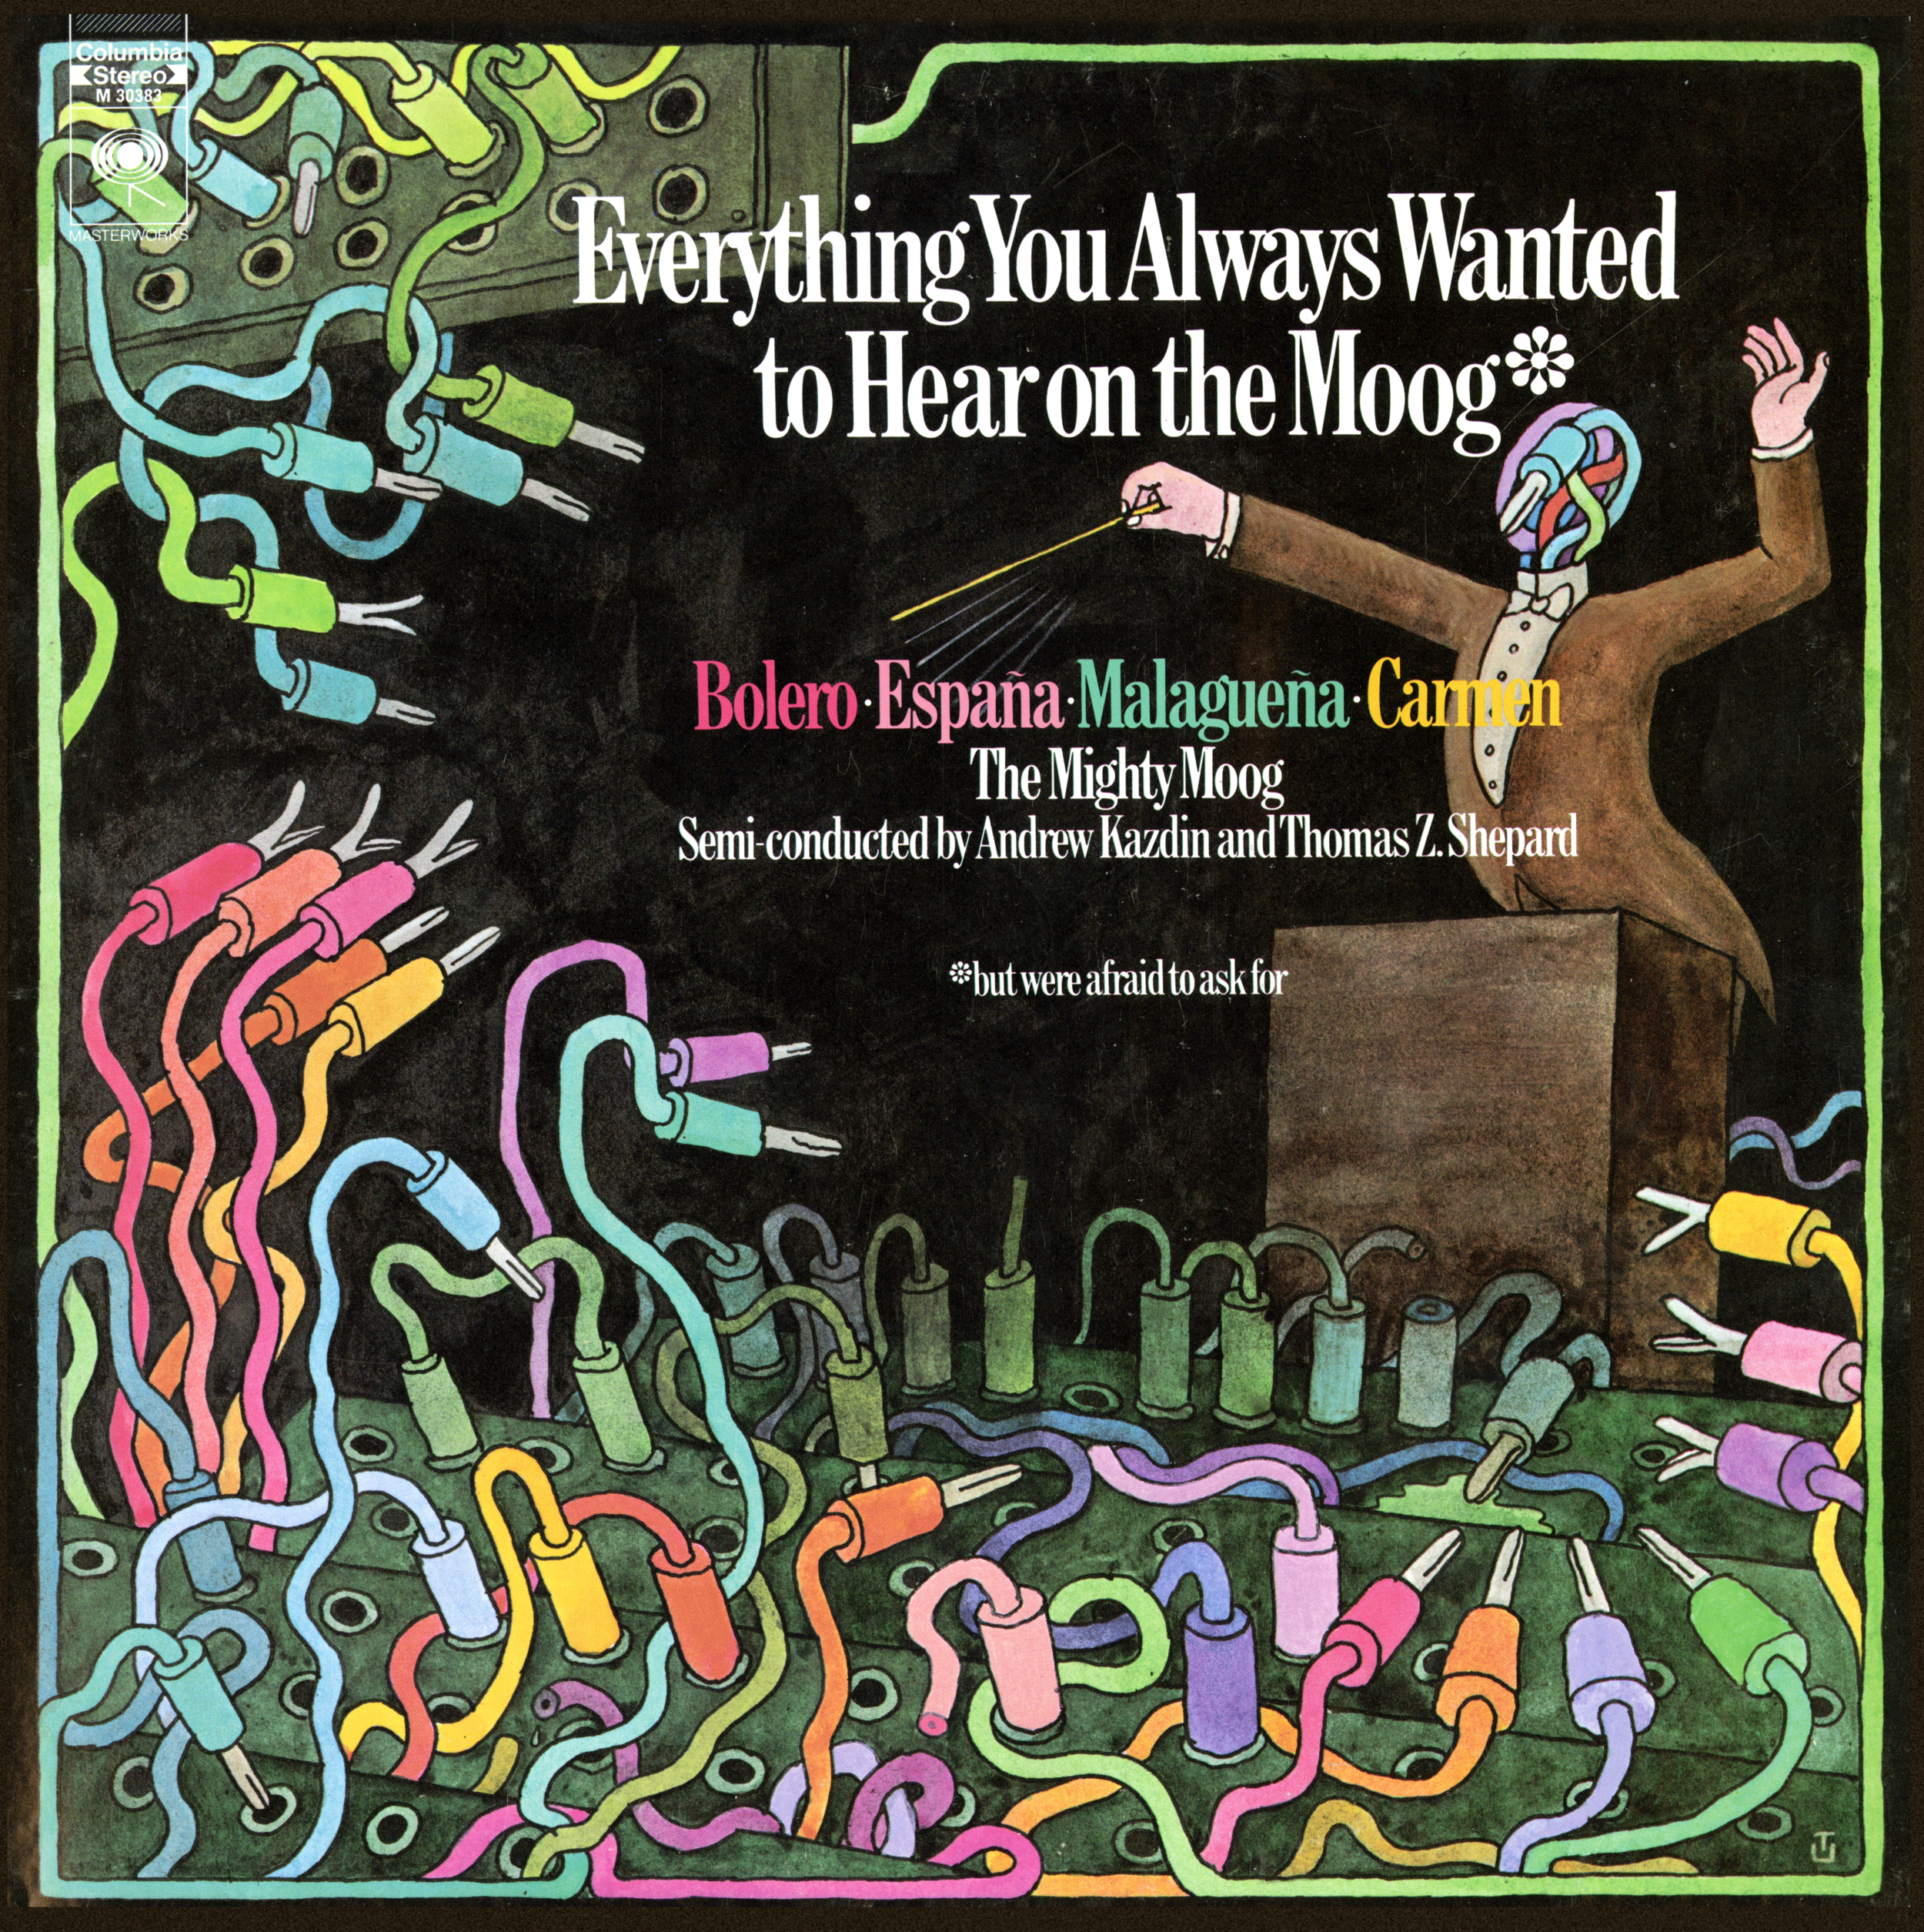 everything-you-always-wanted-to-hear-on-the-moog_23710990478_o.png